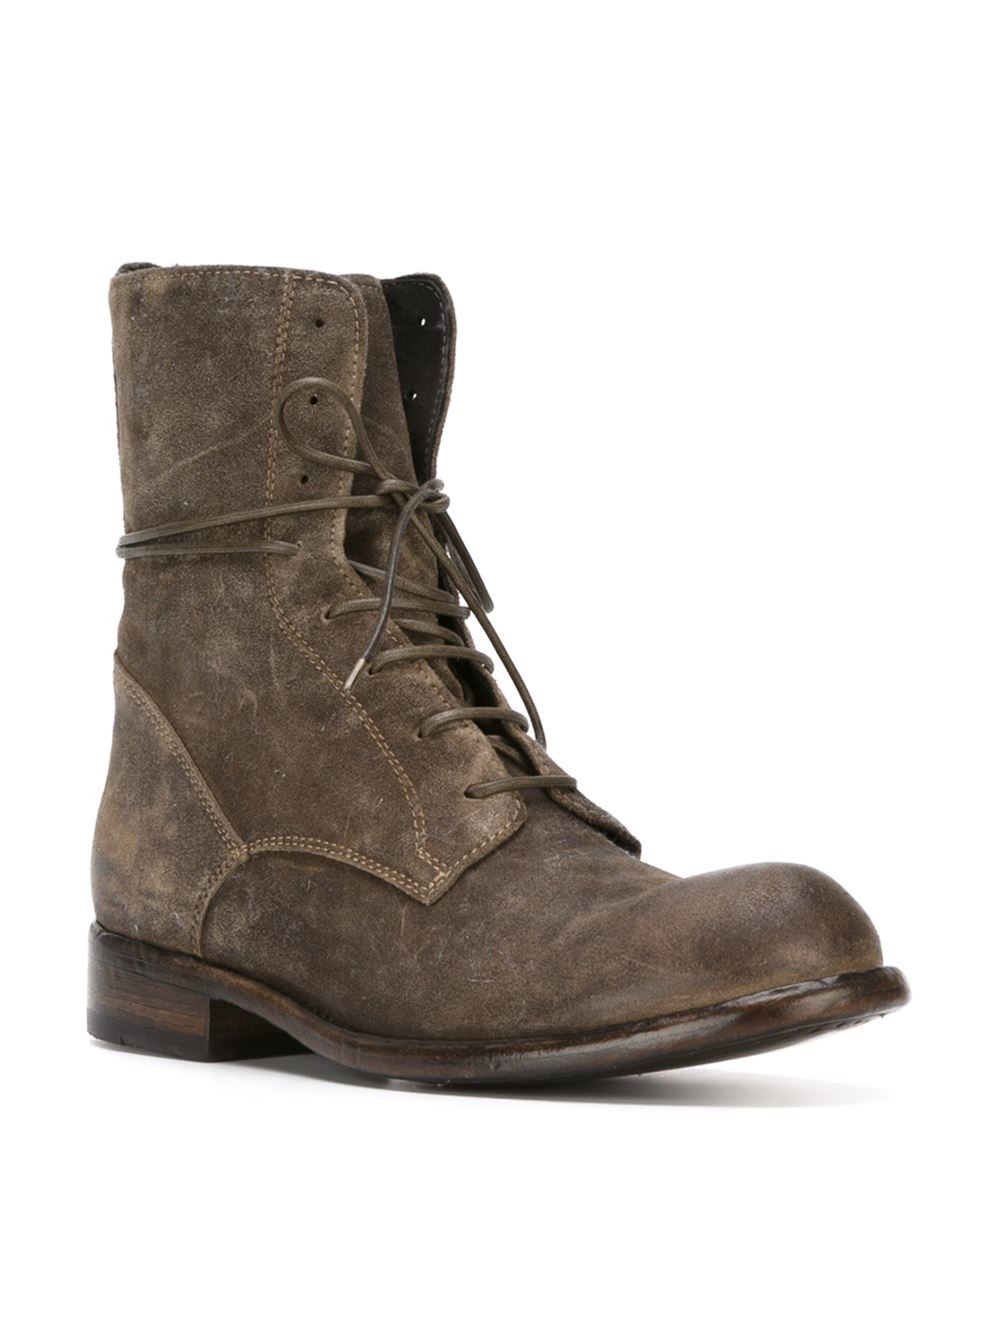 Model Officine Creative Lexikon Leather Ankle Boots In Brown   Lyst